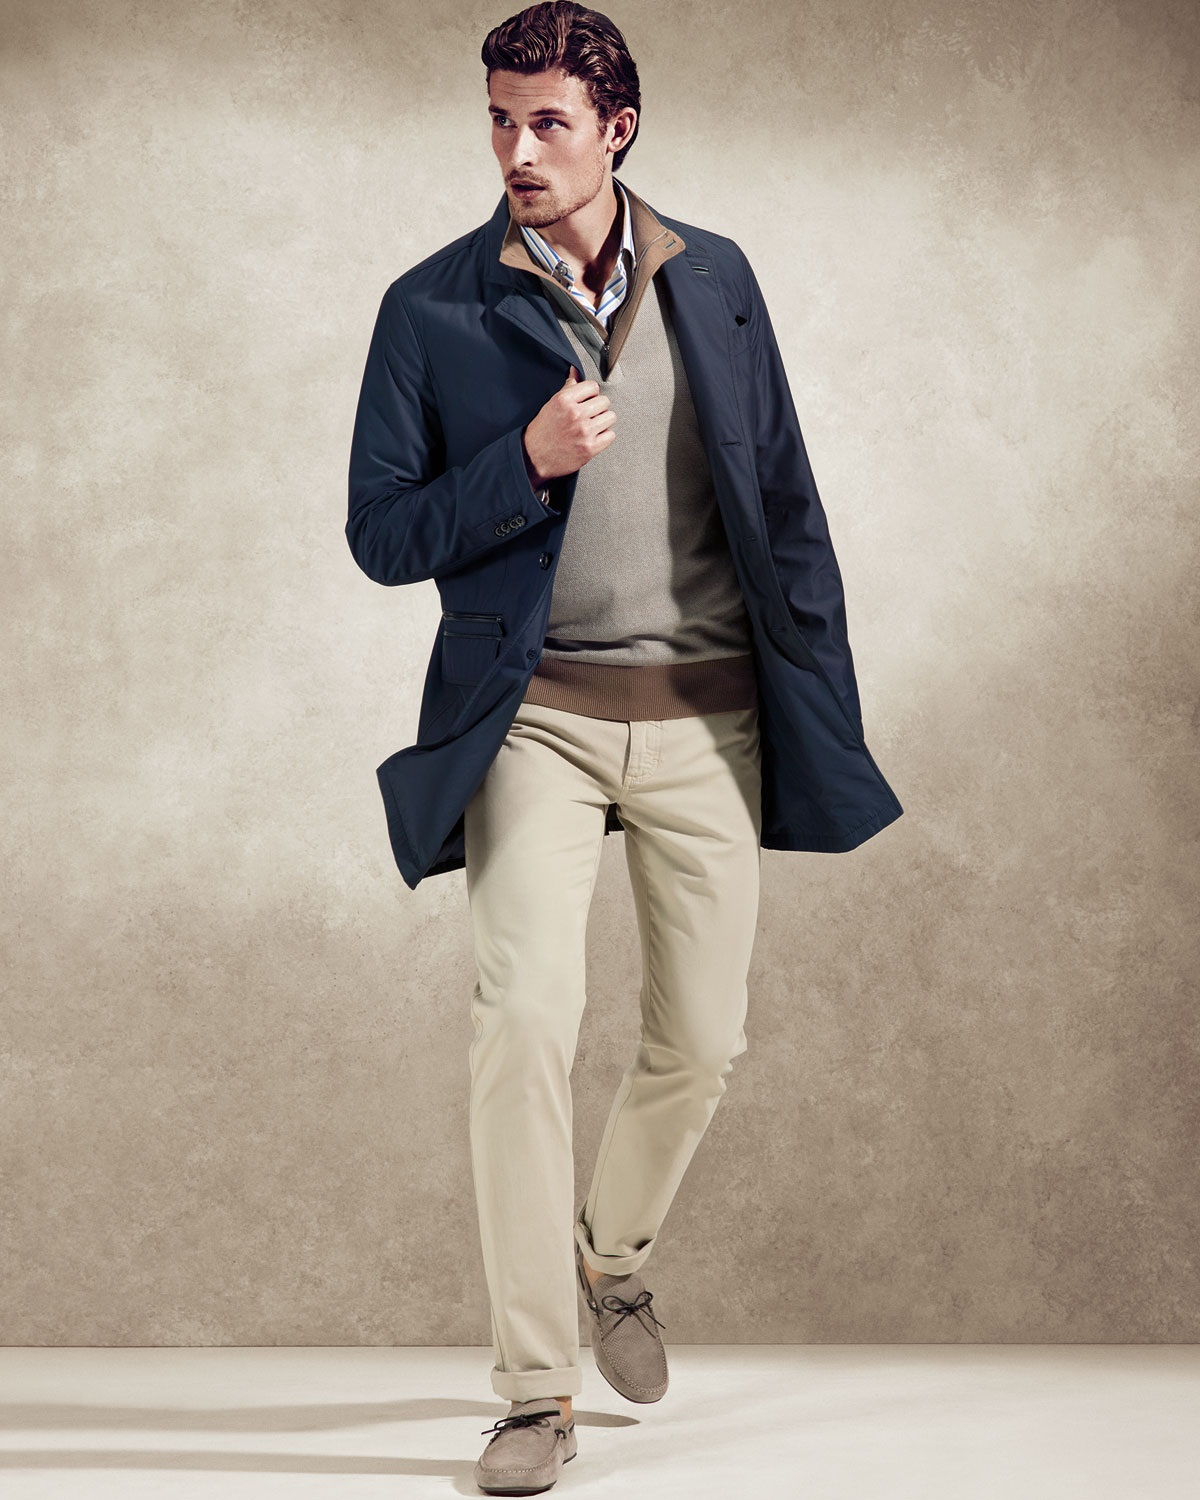 The Style Essentials You Need Men, zip pullover, Ermenegildo Zegna tan zip pullover, blue jacket, chino's